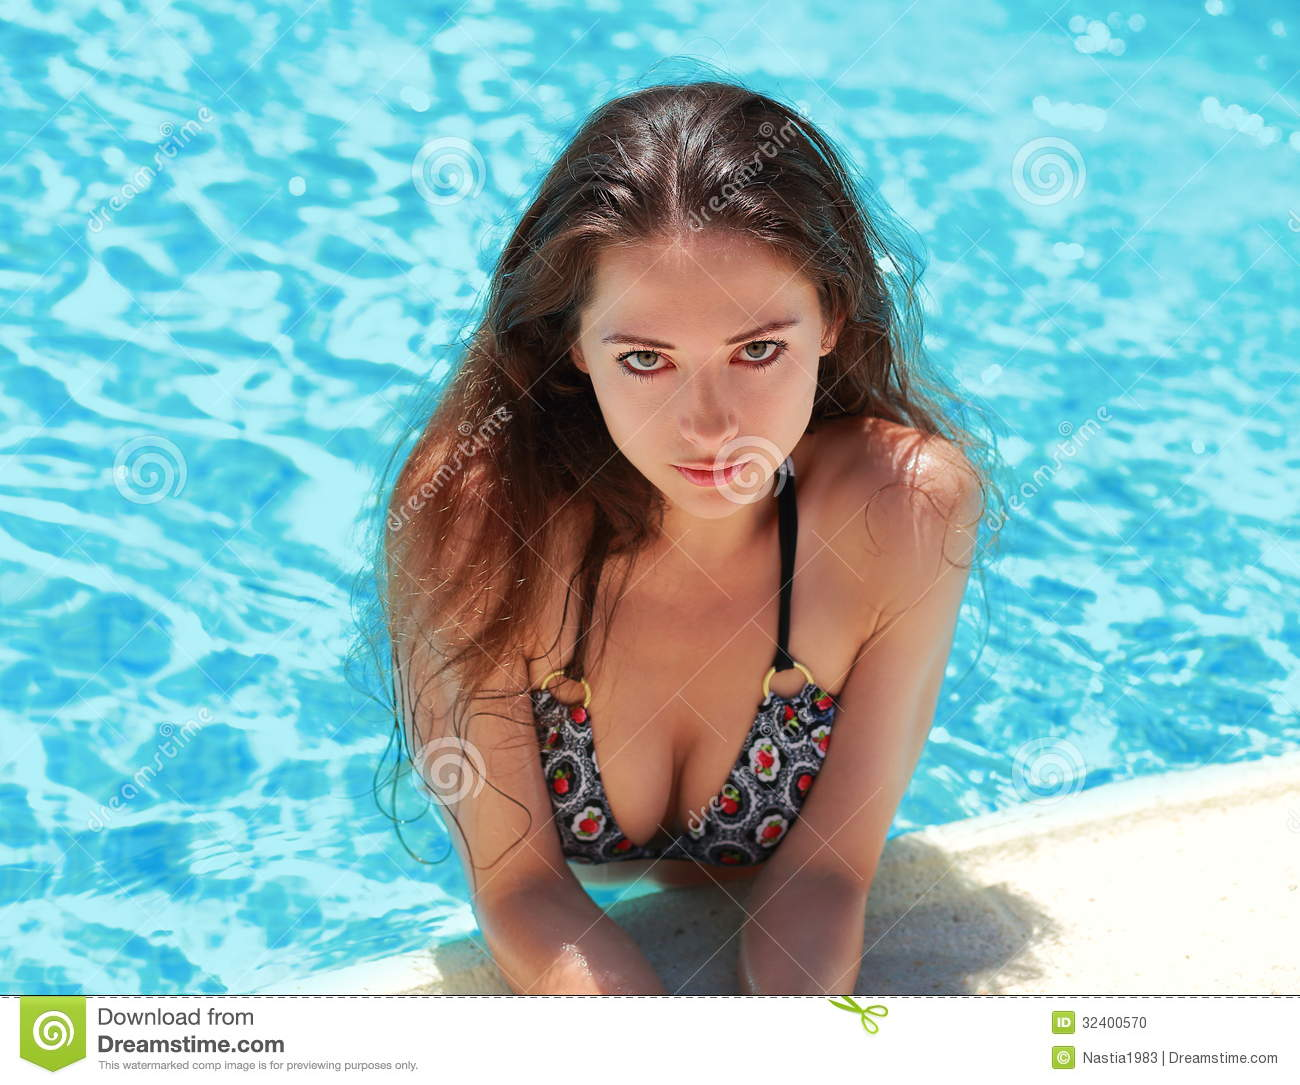 Photos sexy dans la piscine